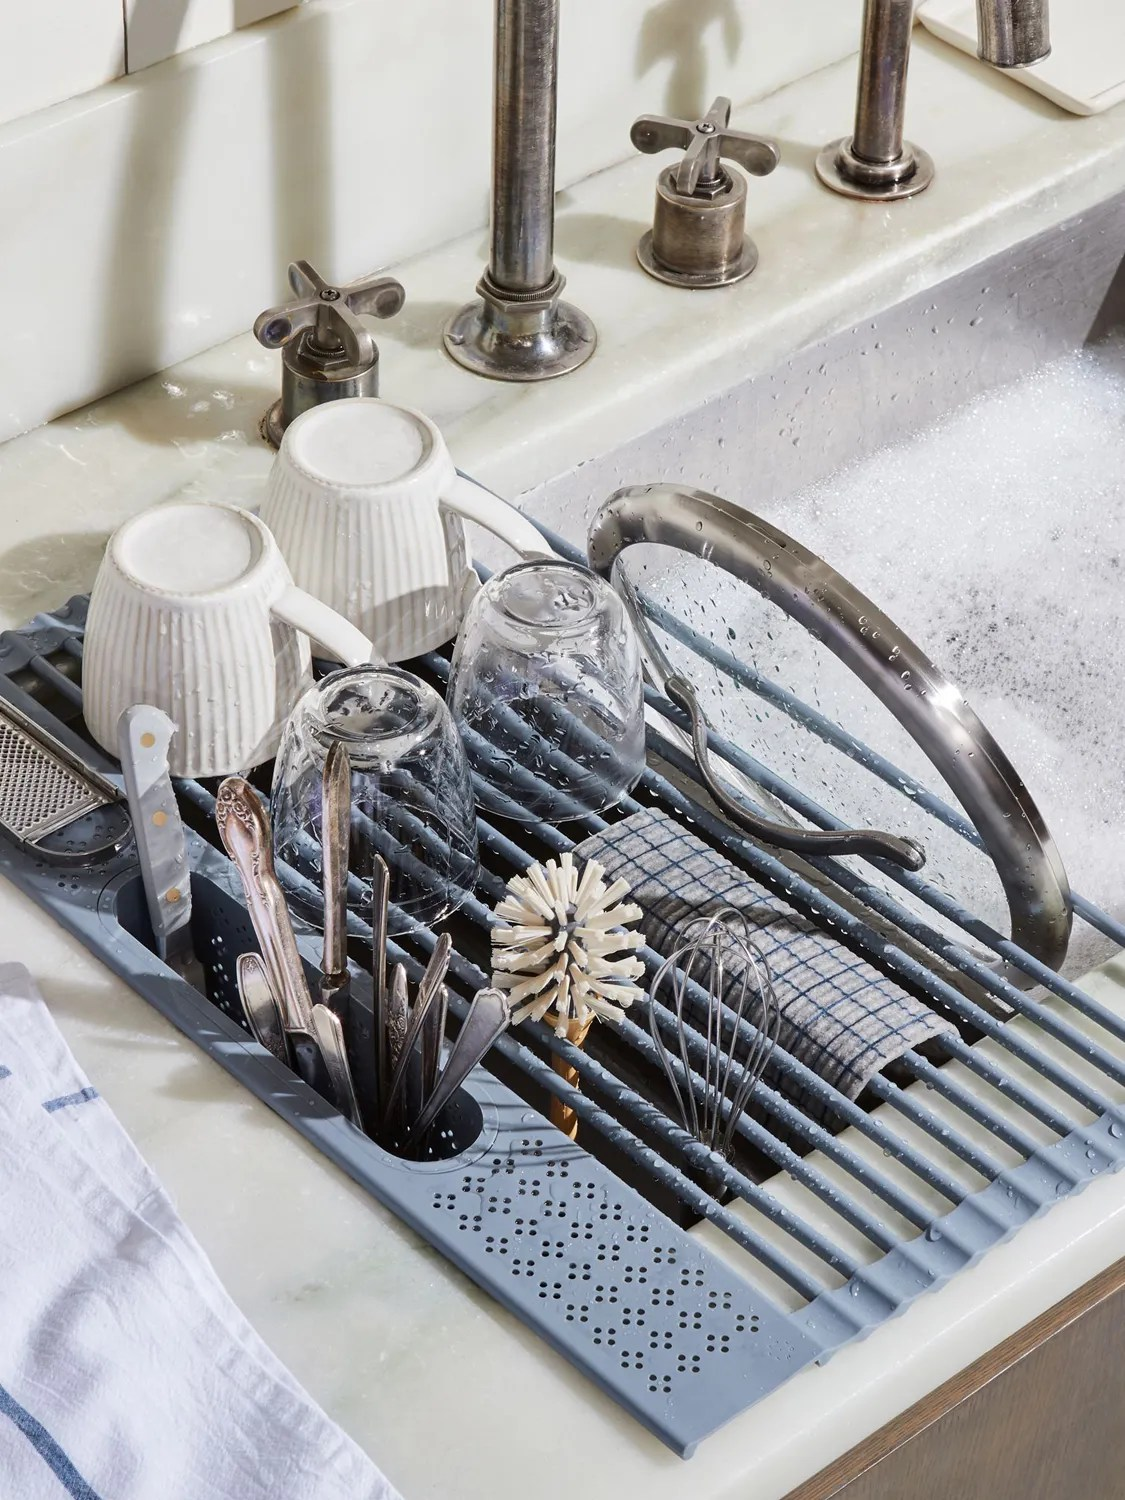 this dish drying rack is easing my